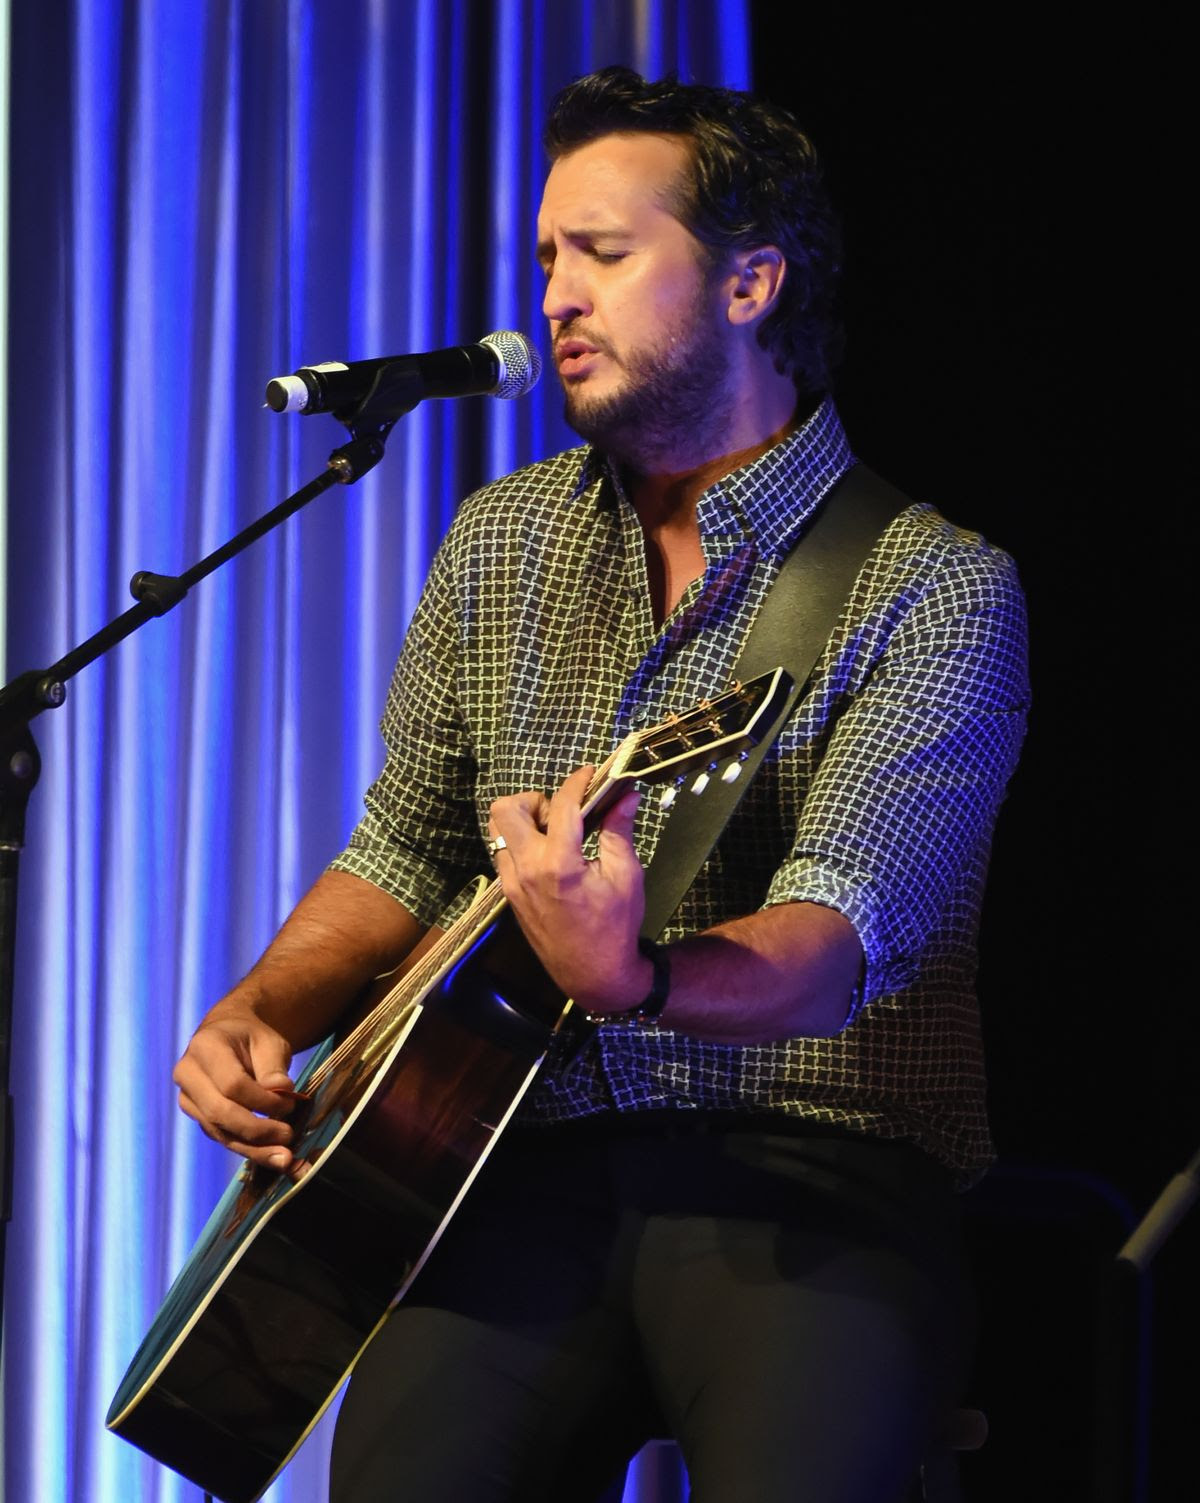 NASHVILLE, TN - OCTOBER 23:  Luke Bryan performs during the 2017 Nashville Songwriters Hall Of Fame Awards at Music City Center on October 23, 2017 in Nashville, Tennessee.  (Photo by Rick Diamond/Getty Images)